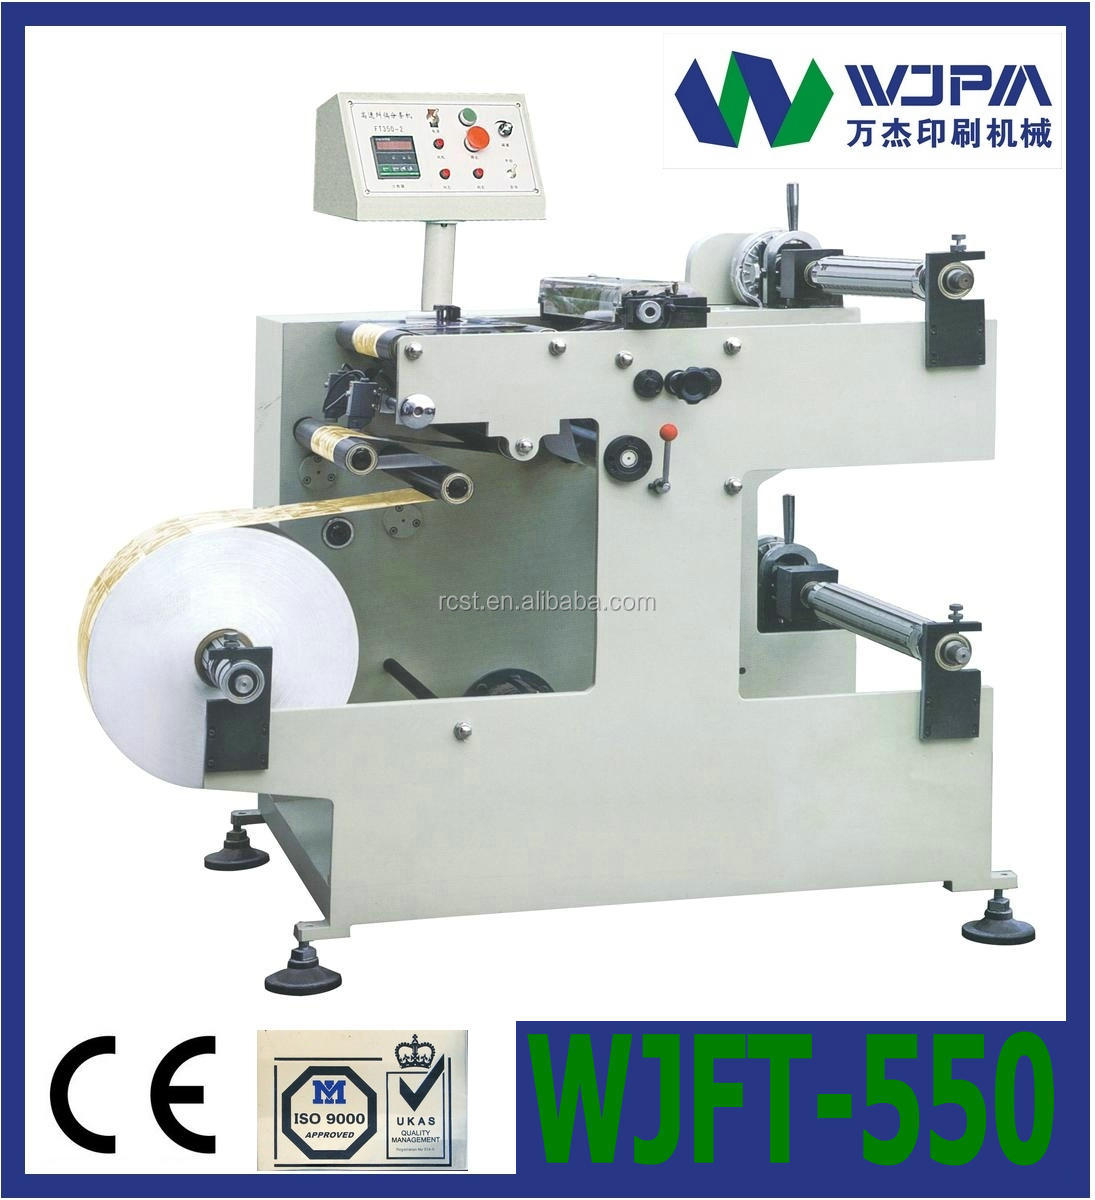 Full Automatic Adhesive Label Die-Cutting Machine(WJMQ-350B)